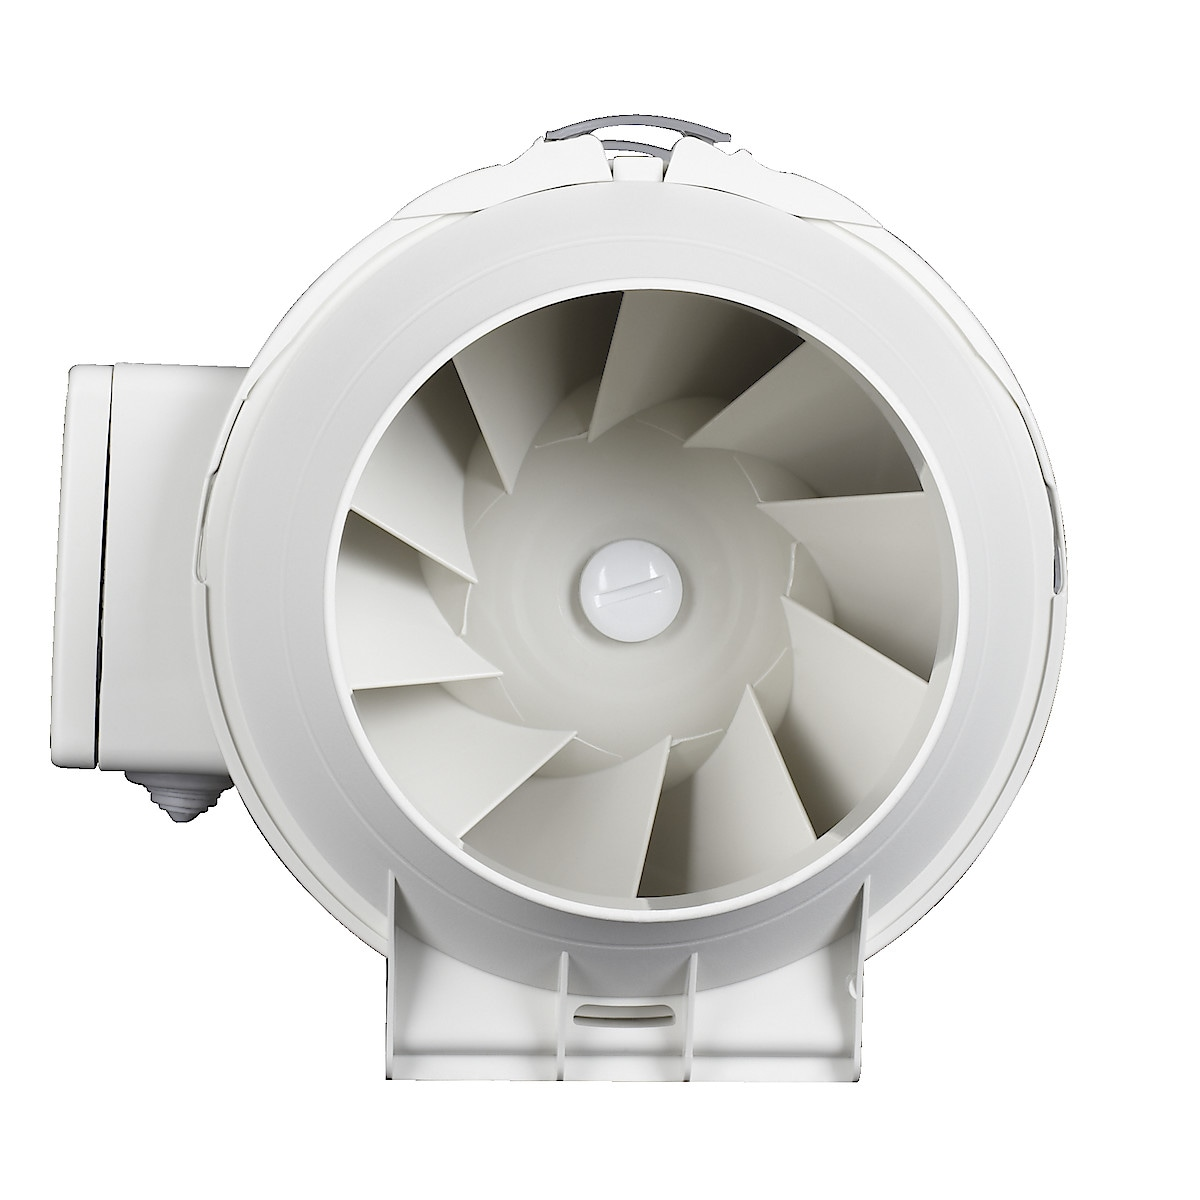 S&P TD 350/125 Duct Fan